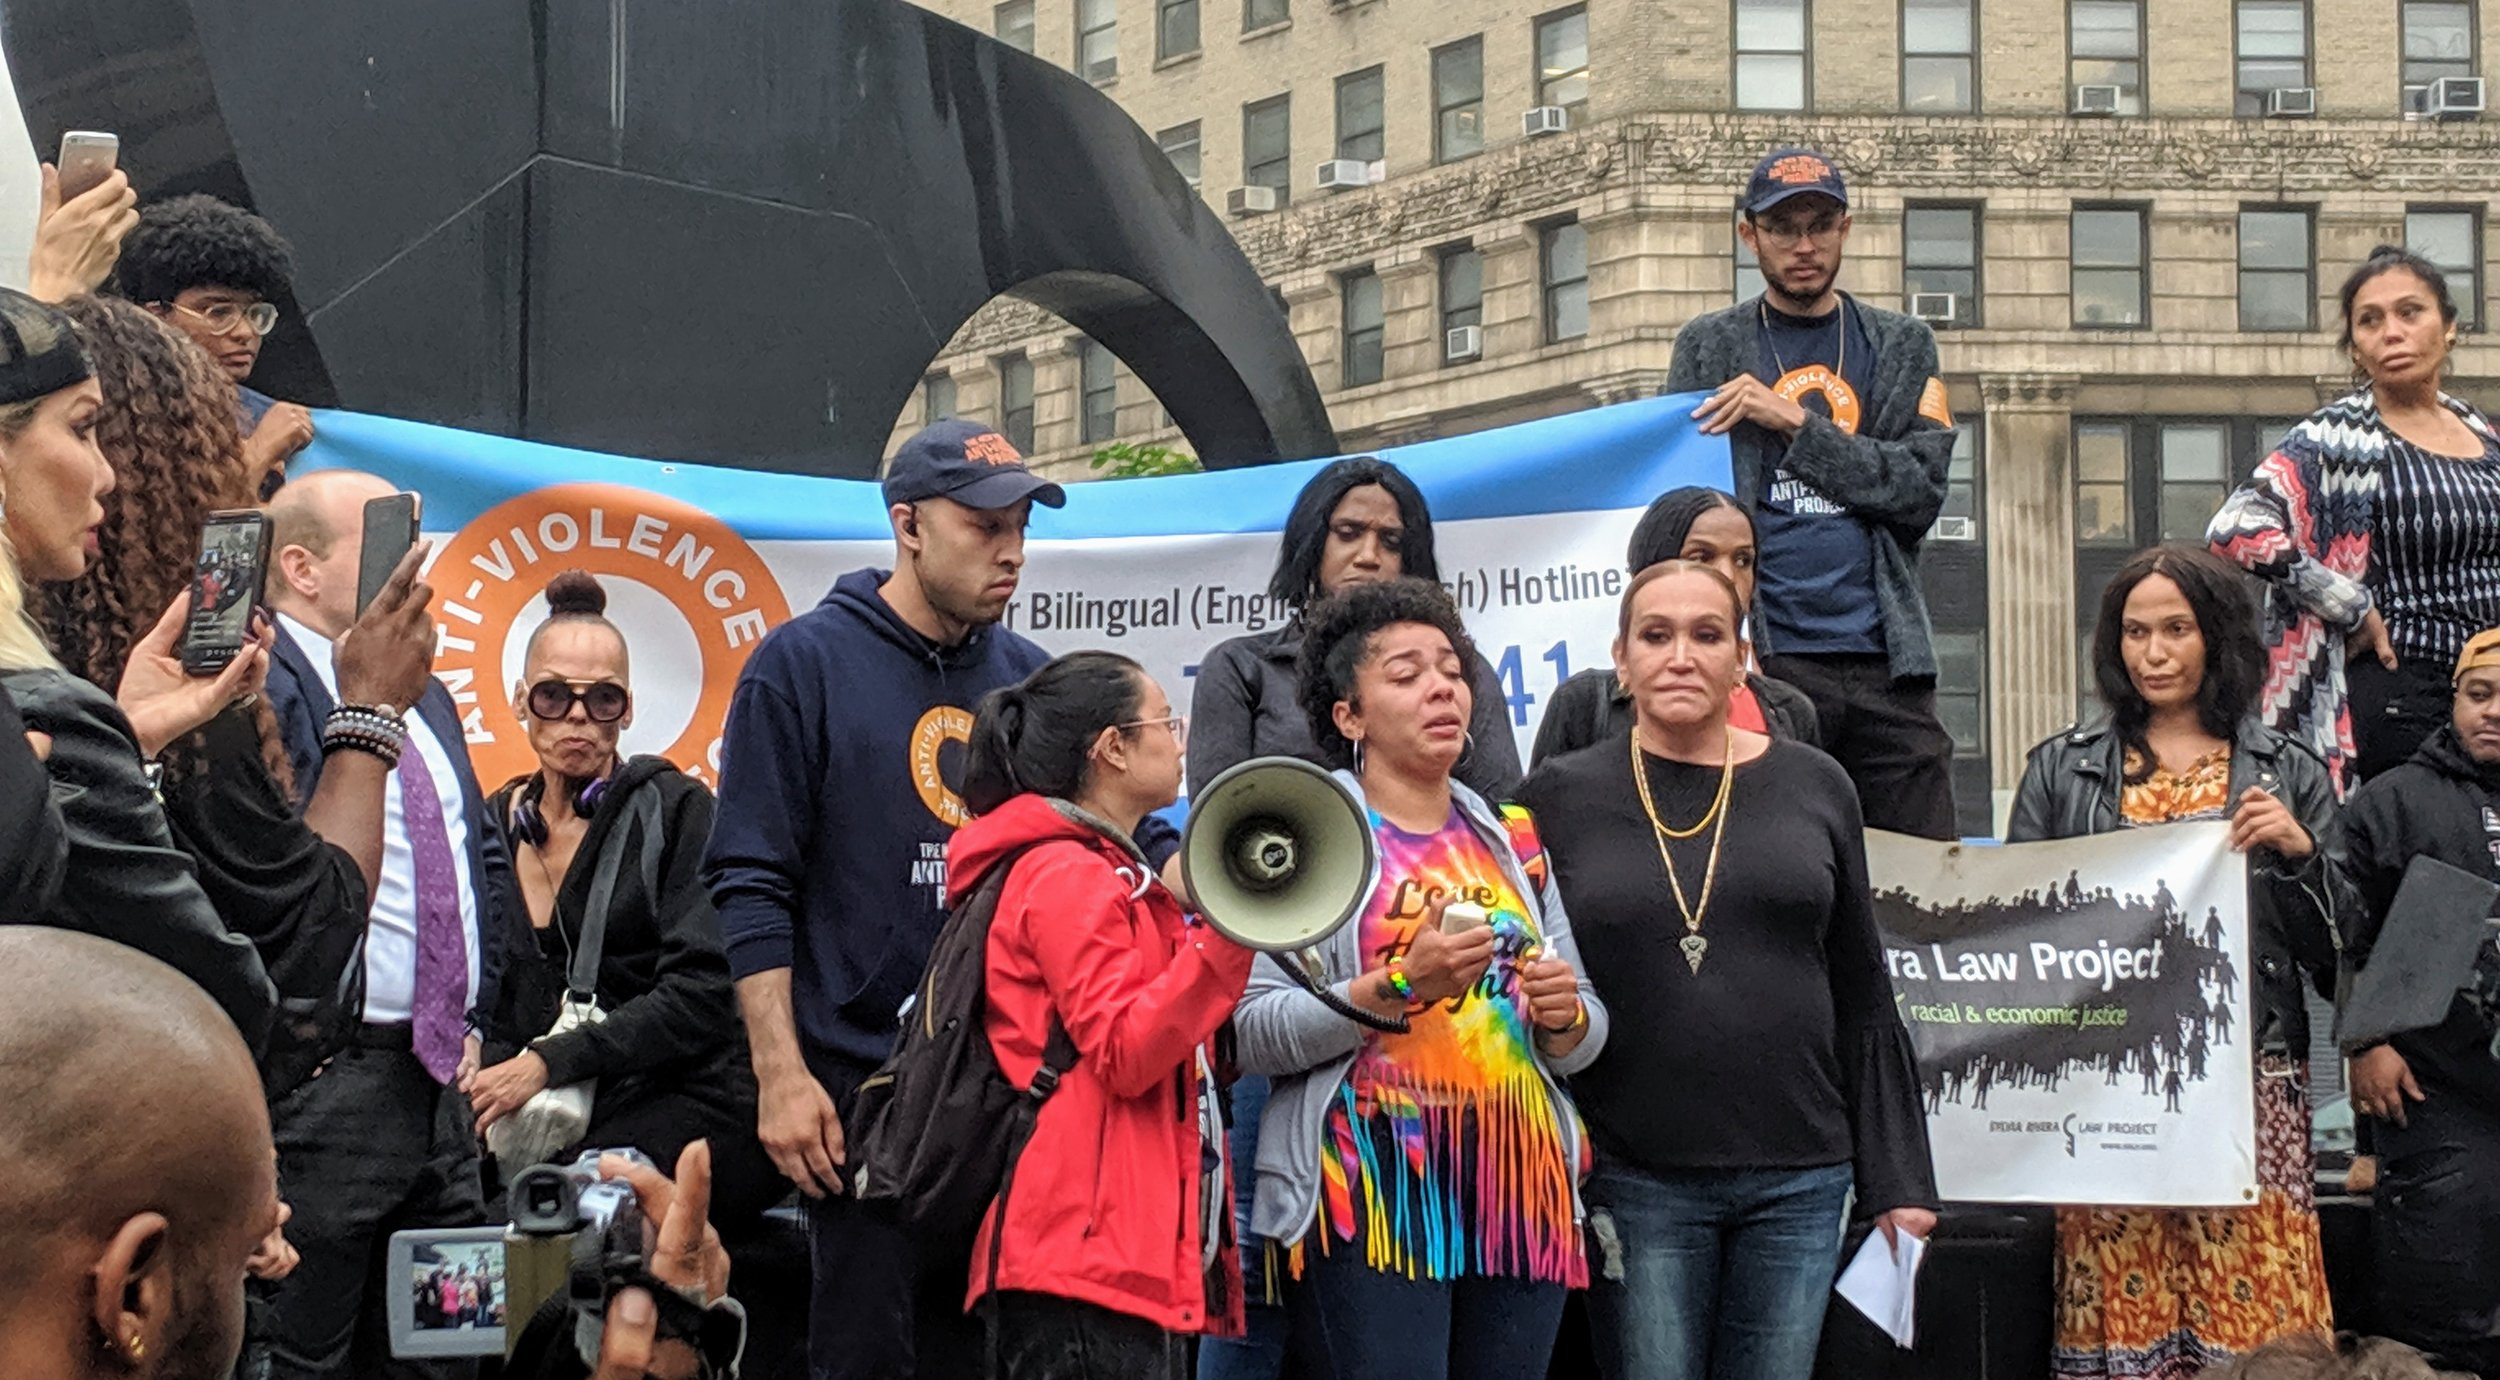 Several hundred supporters gathered at Foley Square in Manhattan on Monday to honor the memory of Layleen Polanco, a trans woman found dead at Rikers Island.  Eagle  photos by Phineas Rueckert.